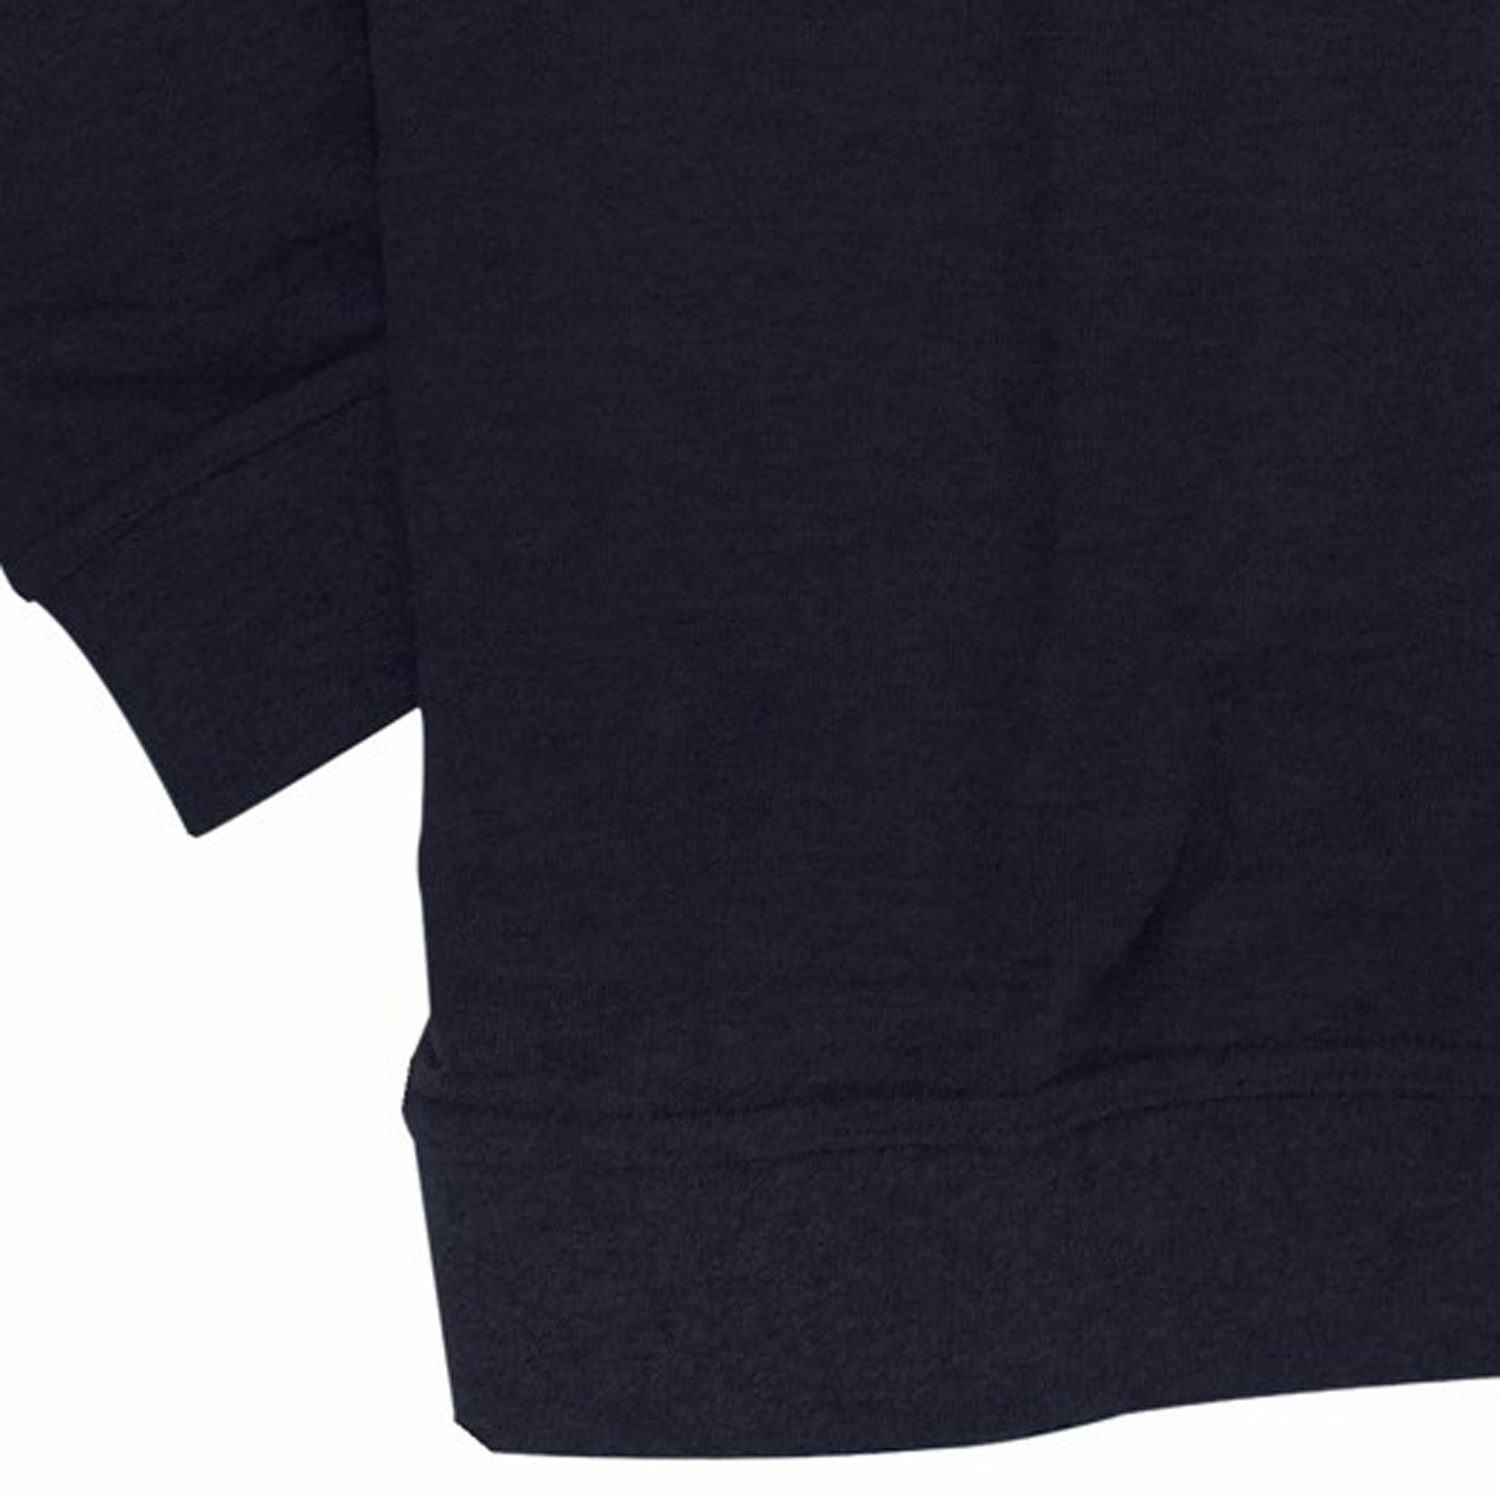 Detail Image to Sweatshirt in darkblue by Redfield in plus sizes up to 10XL